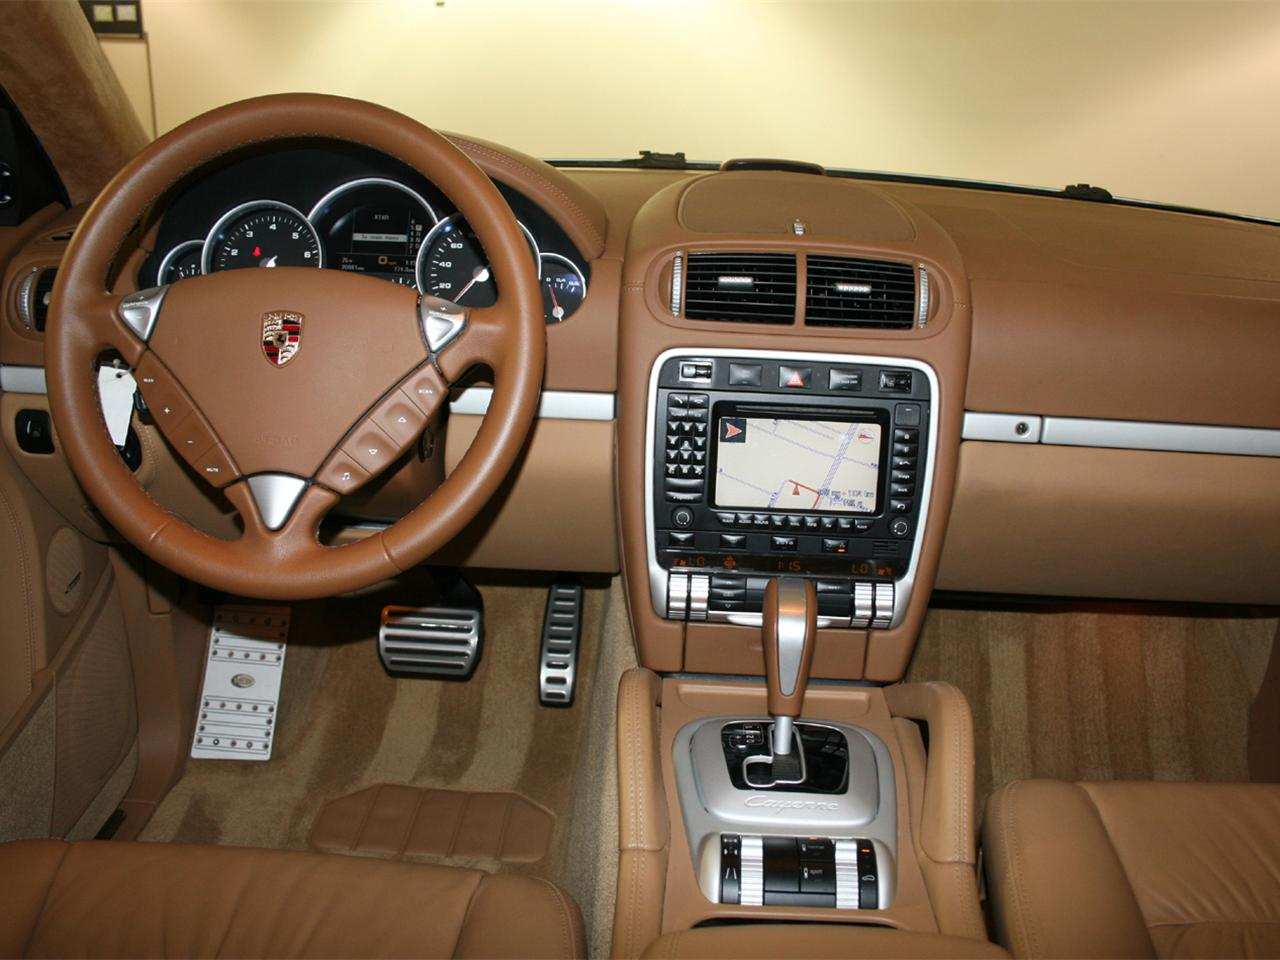 2006 porsche cayenne s manual various owner manual guide u2022 rh justk co 2006 porsche cayenne owner's manual download 2006 porsche cayenne owners manual